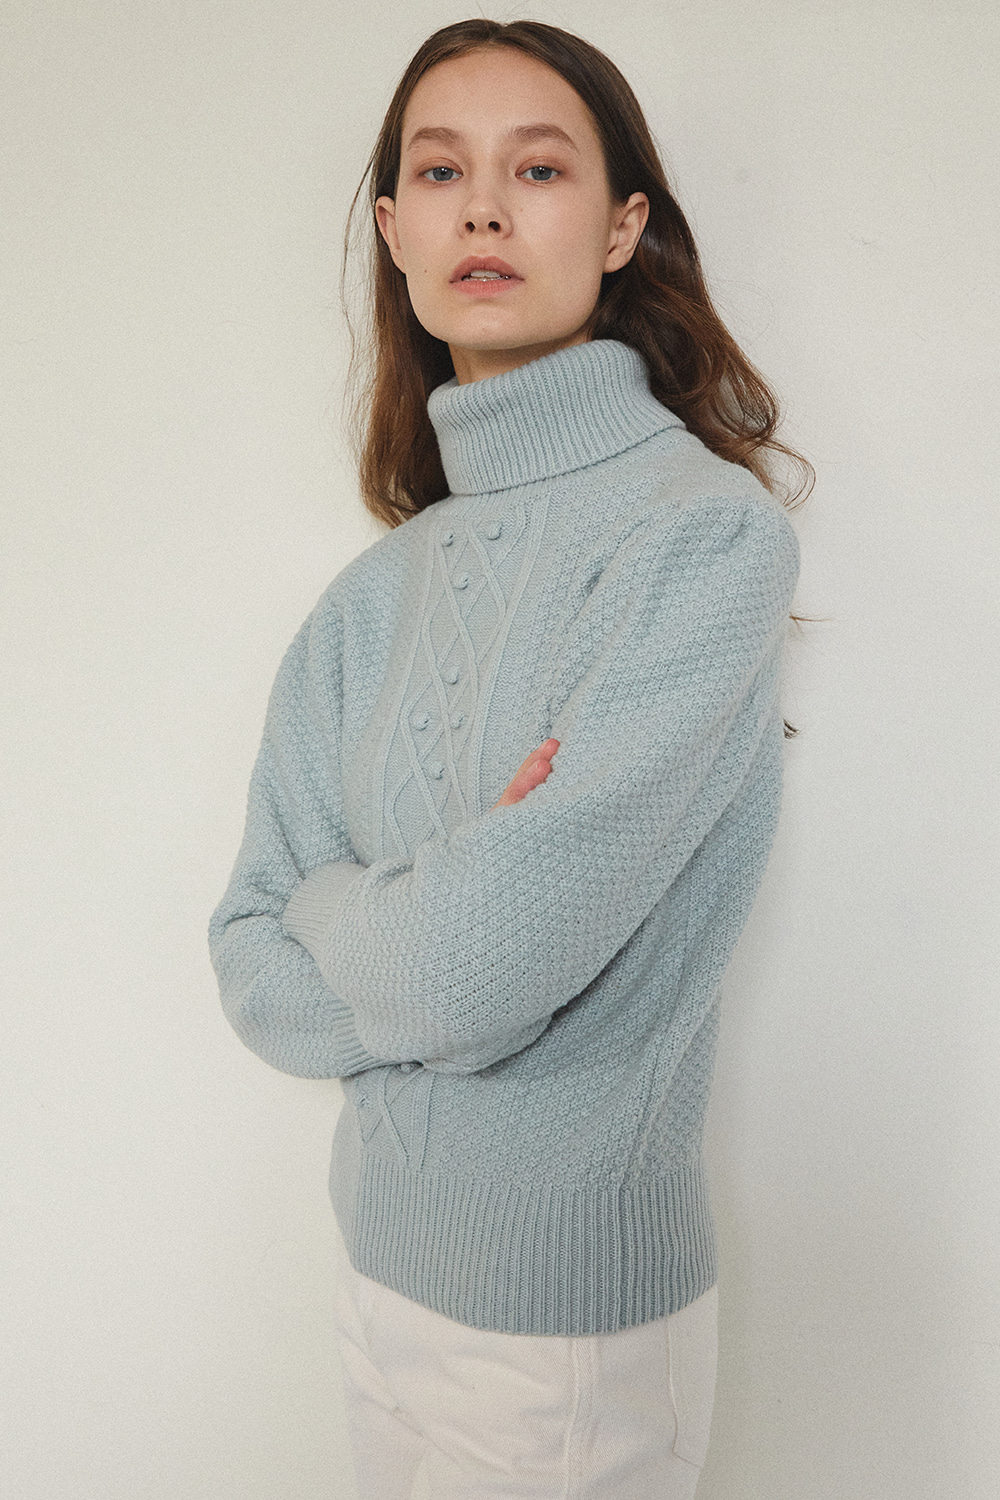 GRANDMA CASH TURTLE NECK [GREY MINT] - 자체브랜드 - 기본트렌드